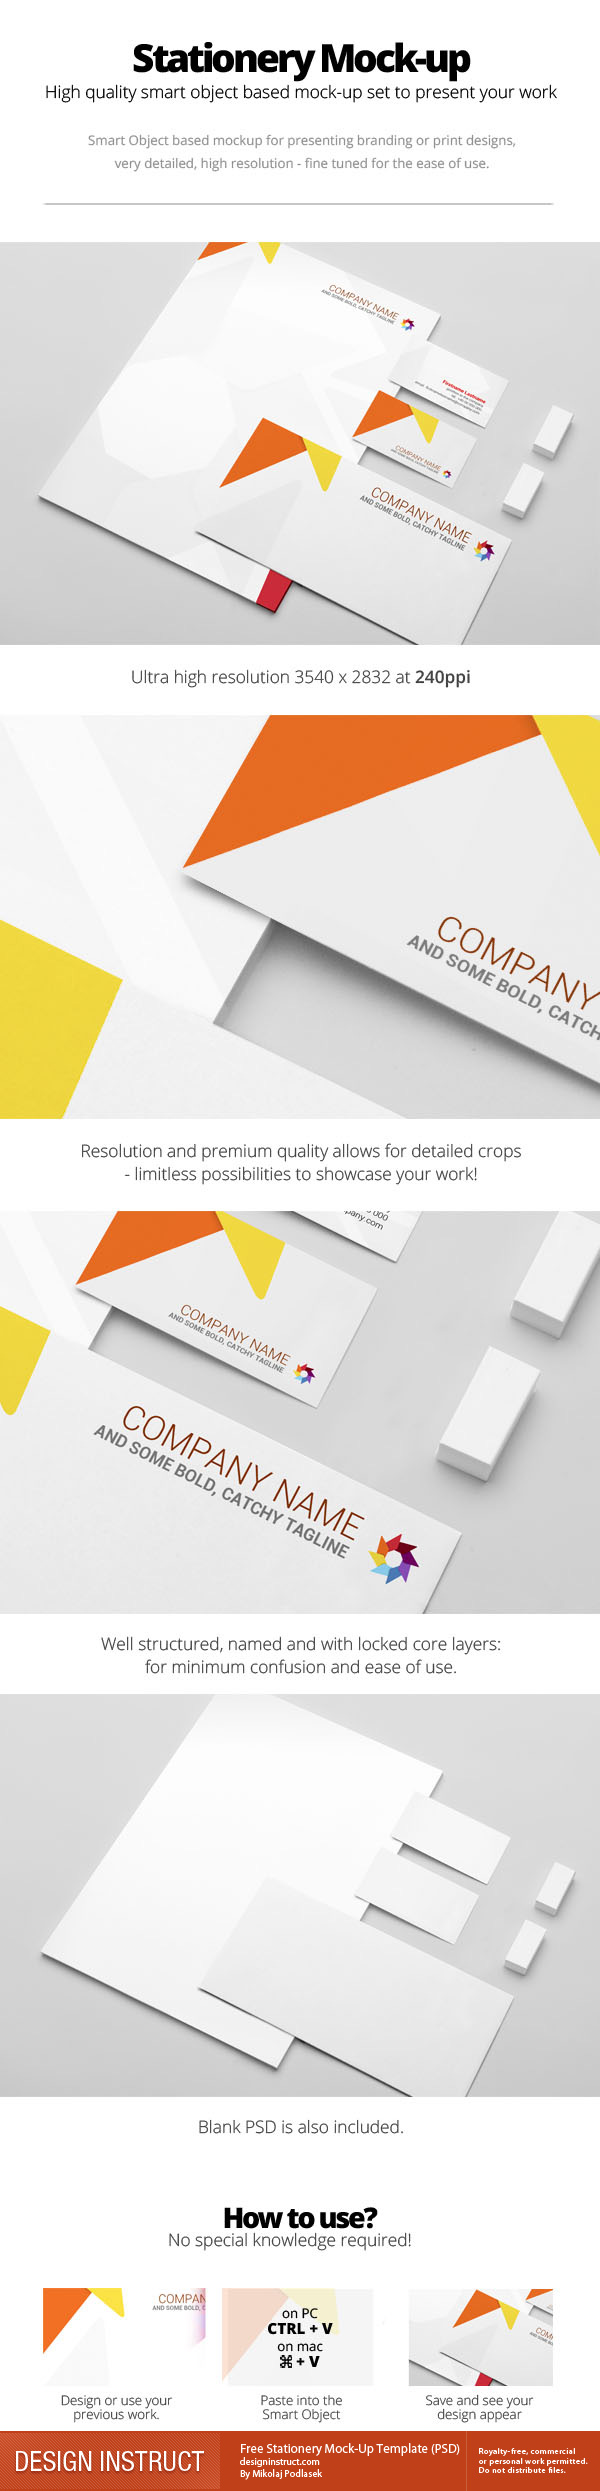 Free Stationery Mock-Up Template (PSD)